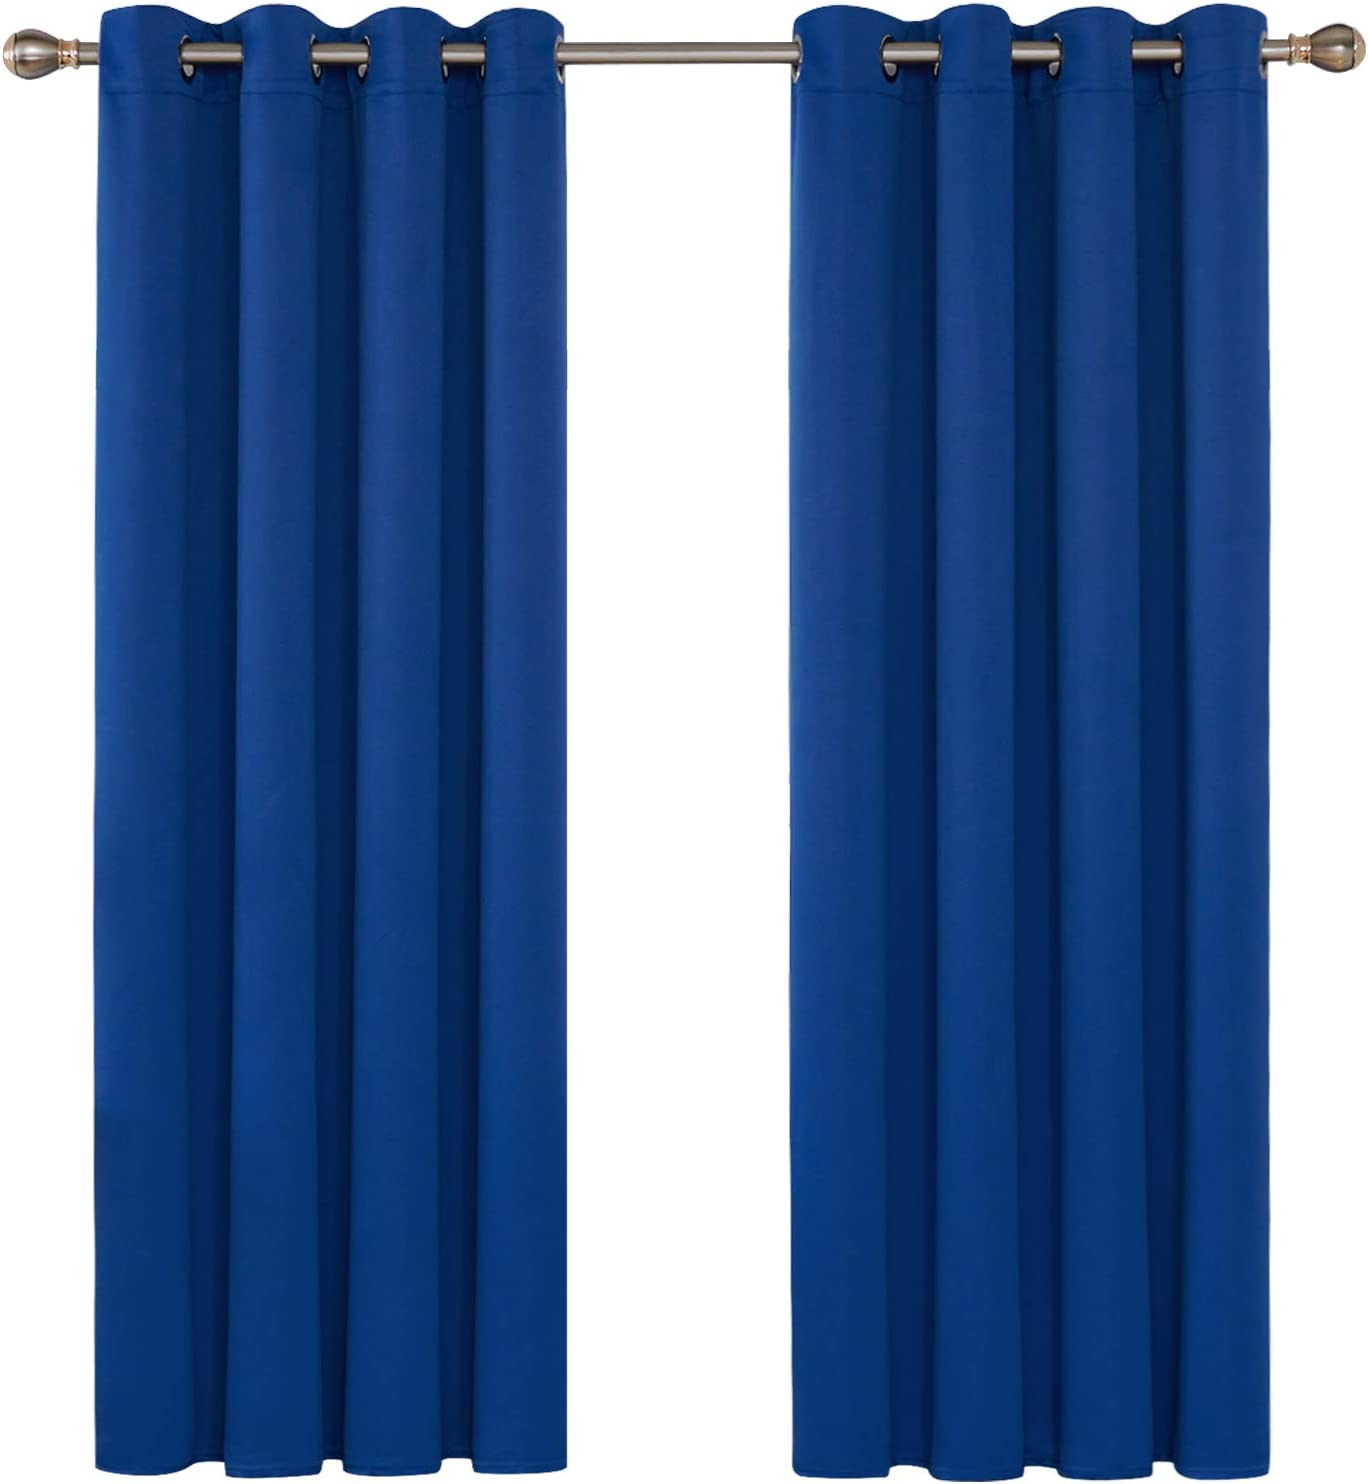 Deconovo Blue Blackout Curtains Eyelet Thermal Insulated Bedroom Blackout Curtains for Living Room 46 x 54 Inch Drop 2 Panels W46 x L54 Blue